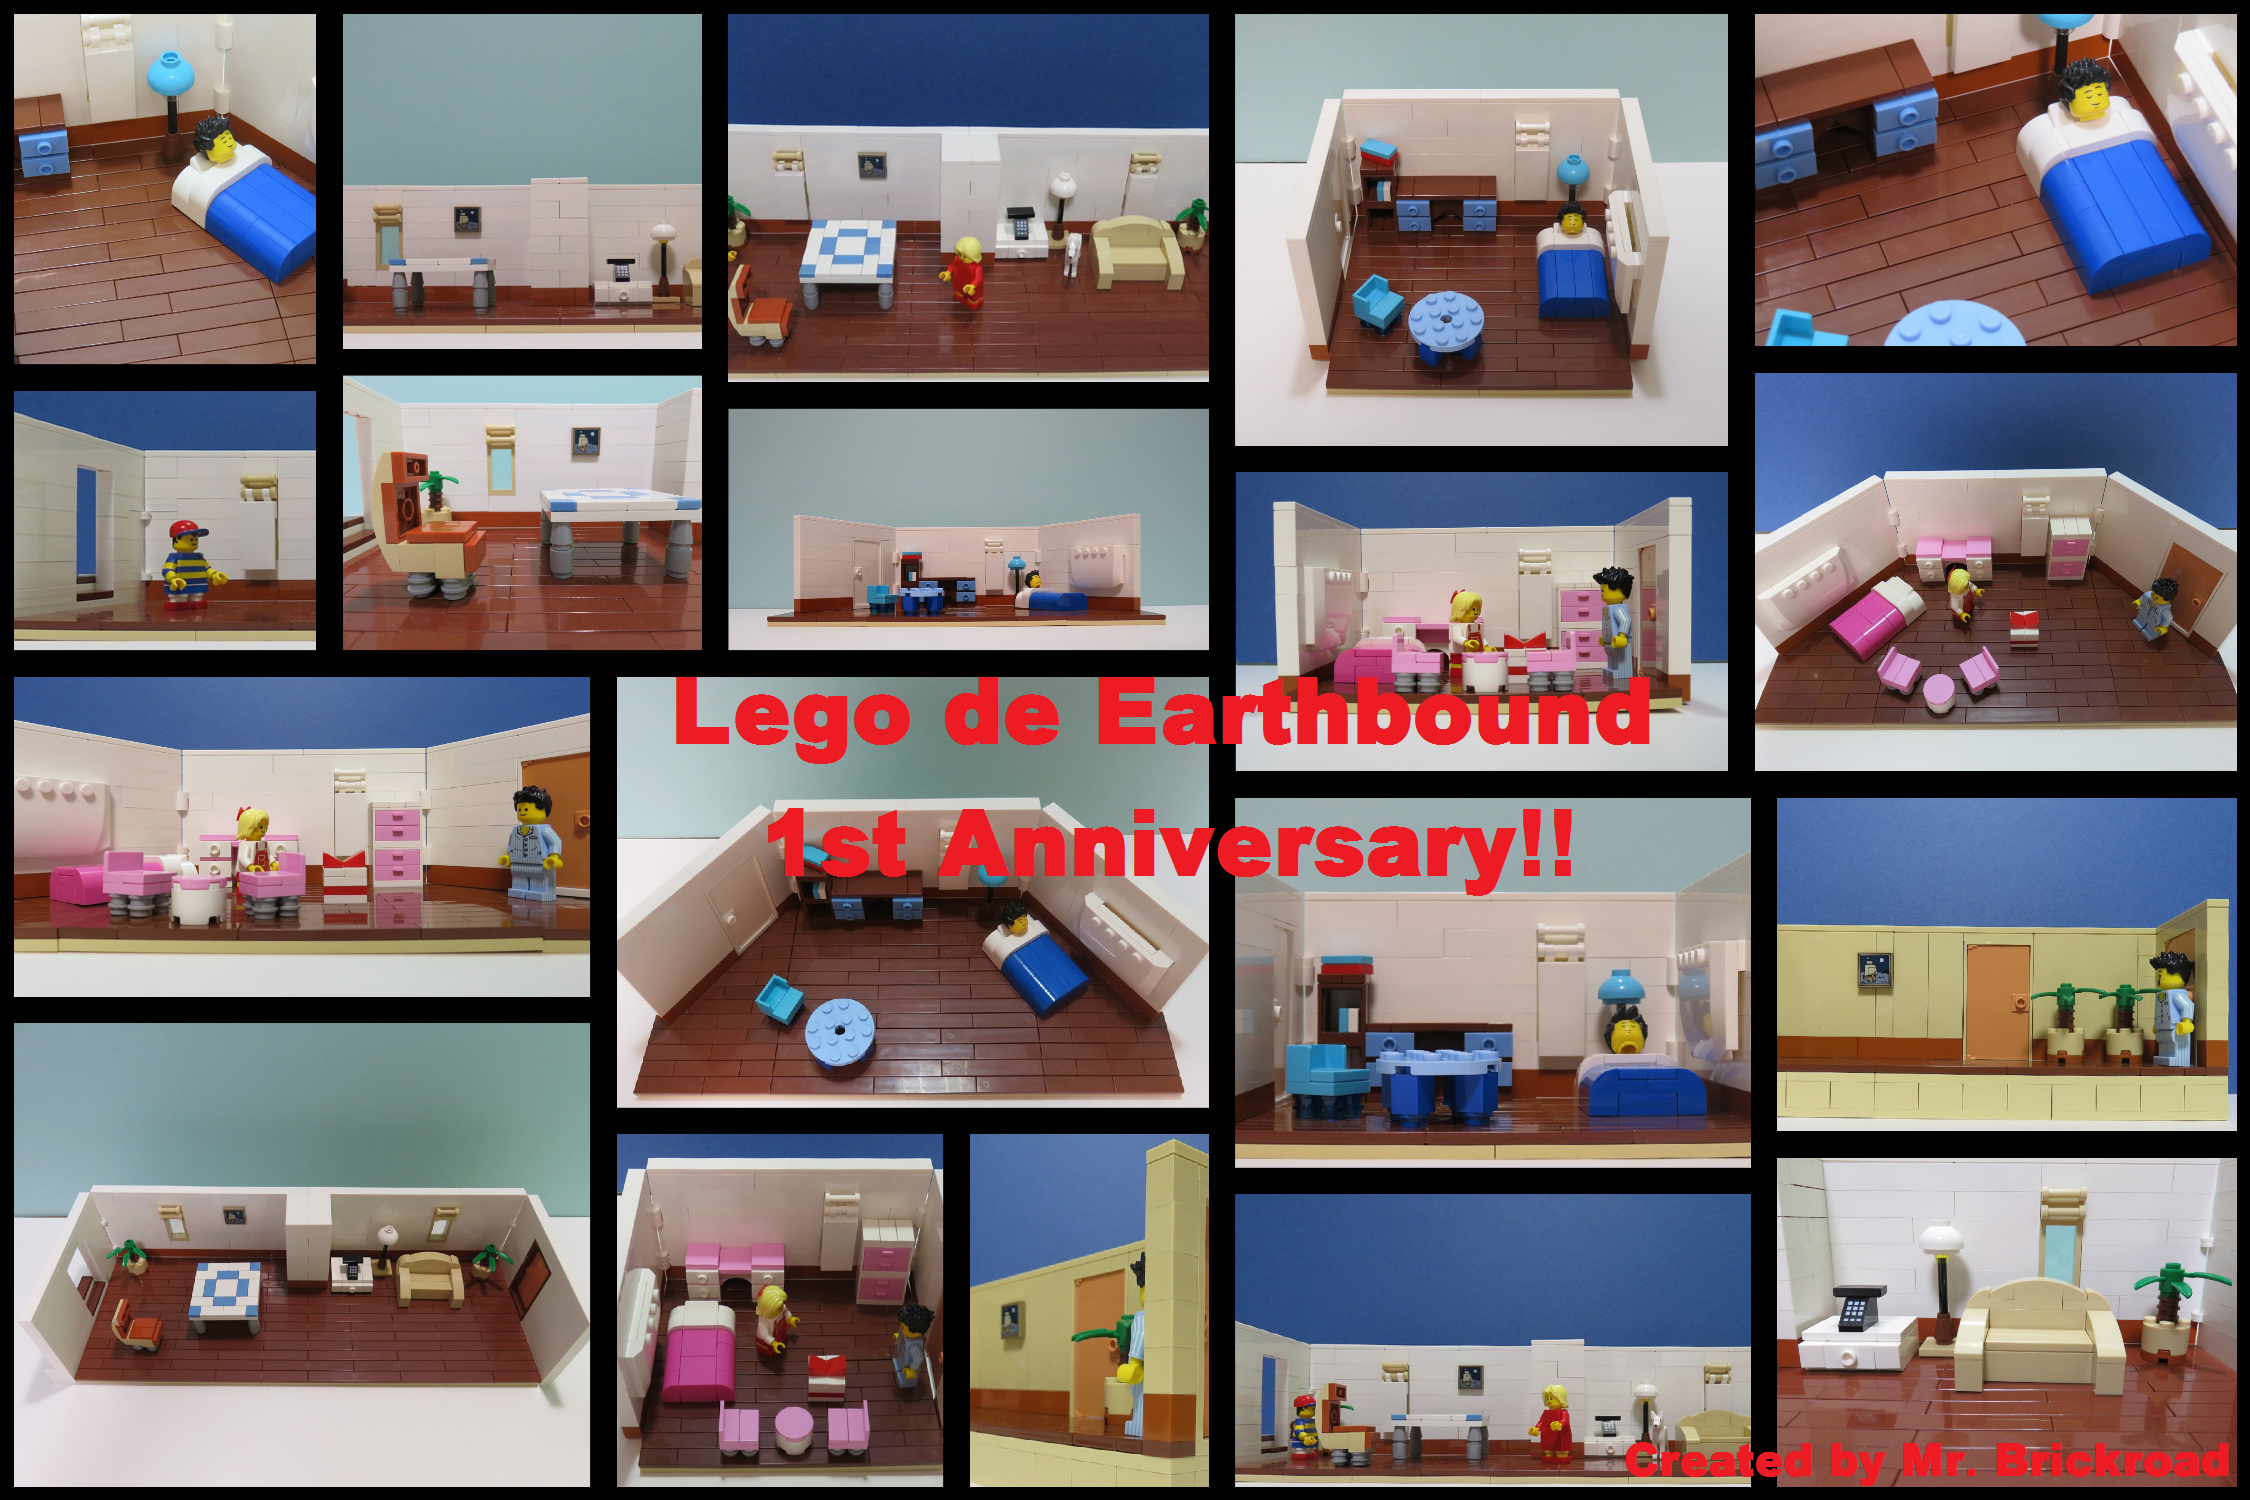 Lego_de_Earthbound_1st_Anniversary_02m2w.png